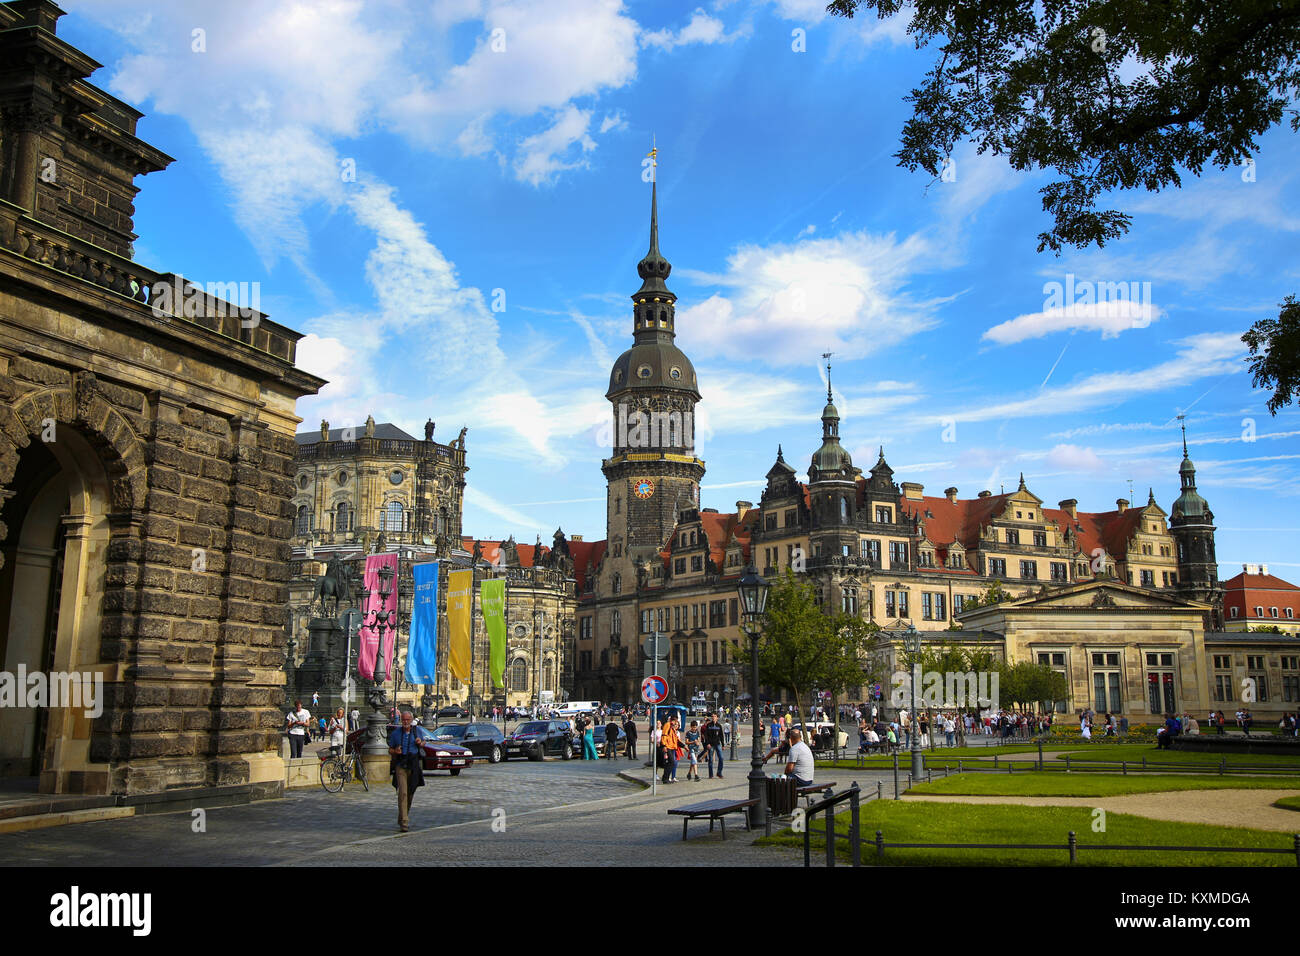 DRESDEN, GERMANY – AUGUST 13, 2016: Tourists walk on Theaterplatz street and majestic view on  Saxony Dresden Castle - Stock Image